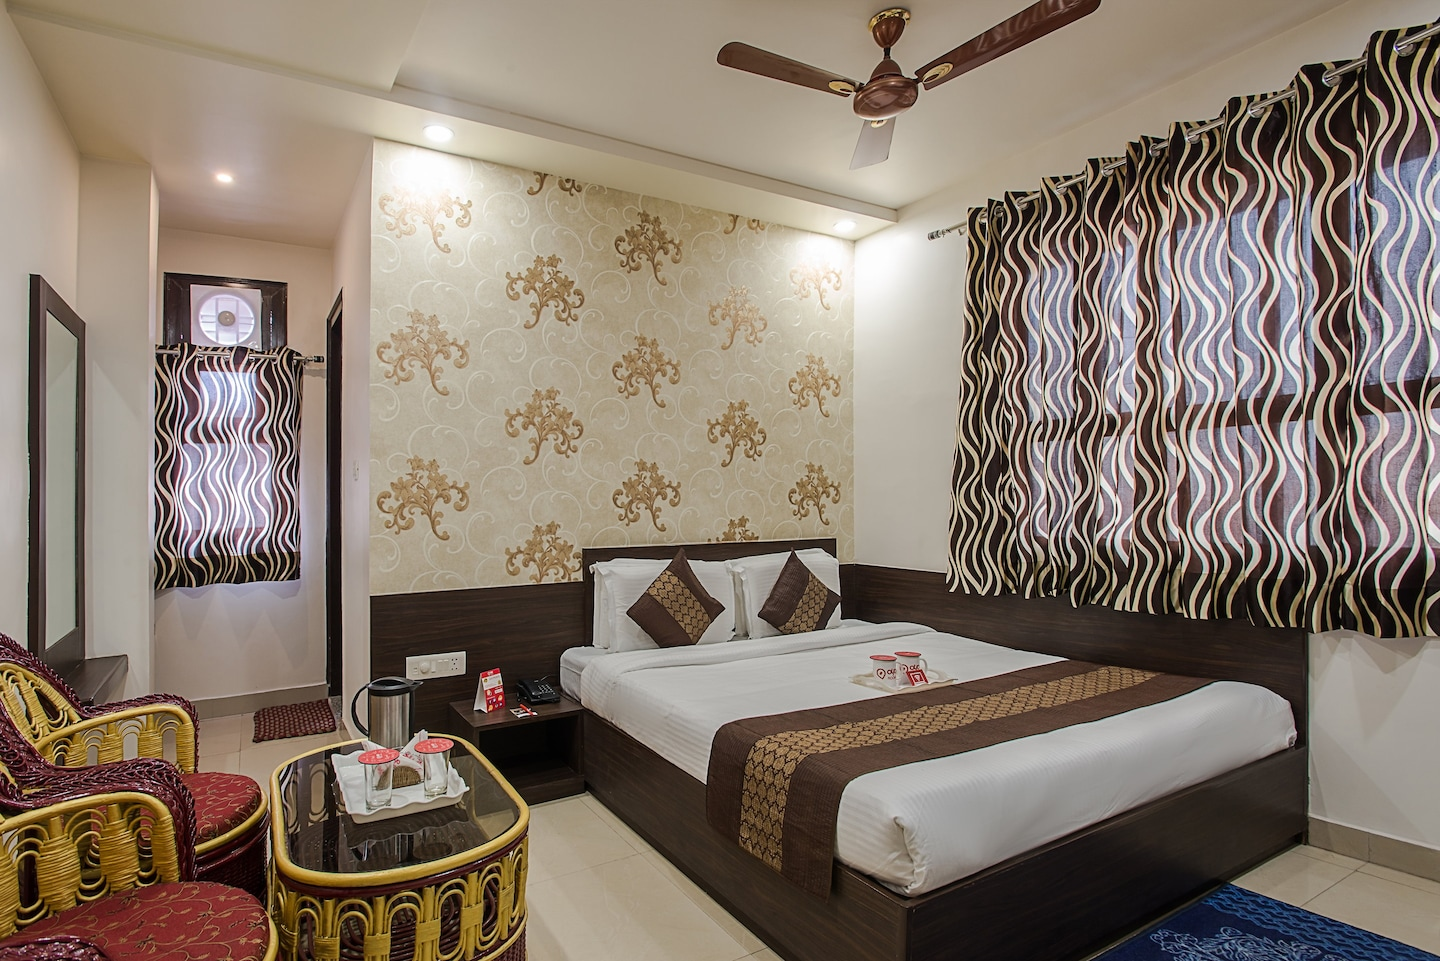 OYO Rooms 160 Sindhi Camp Metro Station Room-1